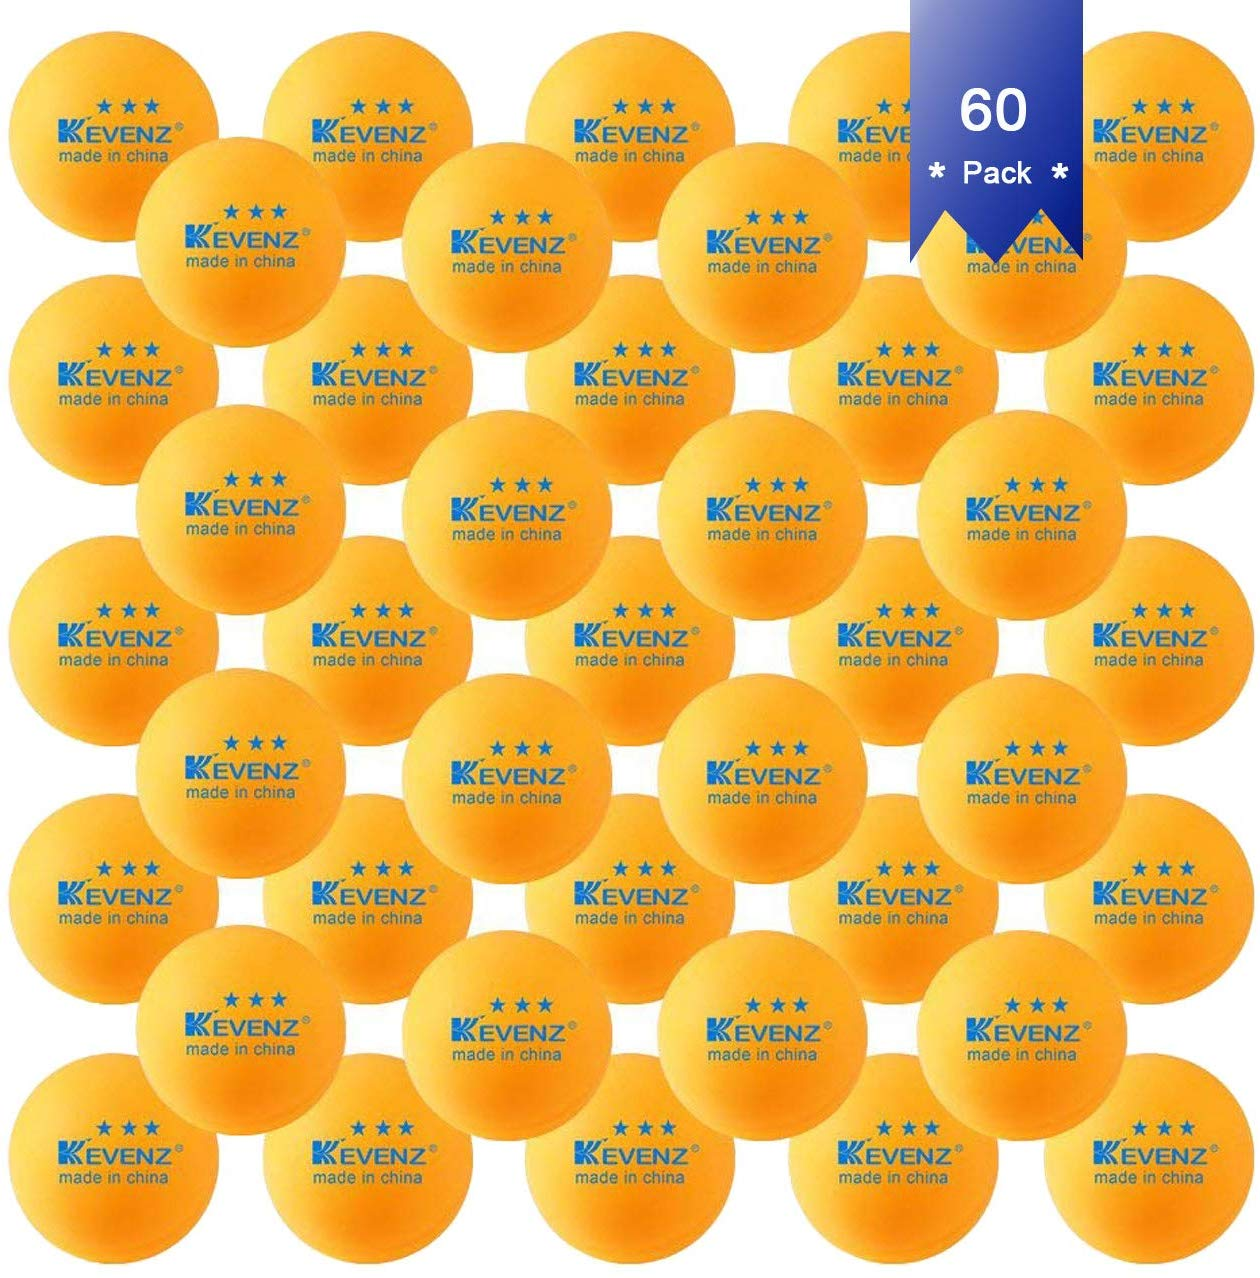 KEVENZ 50-Pack 3-Star Plus 40mm Orange Table Tennis Balls, Advanced Training Ping Pong Balls